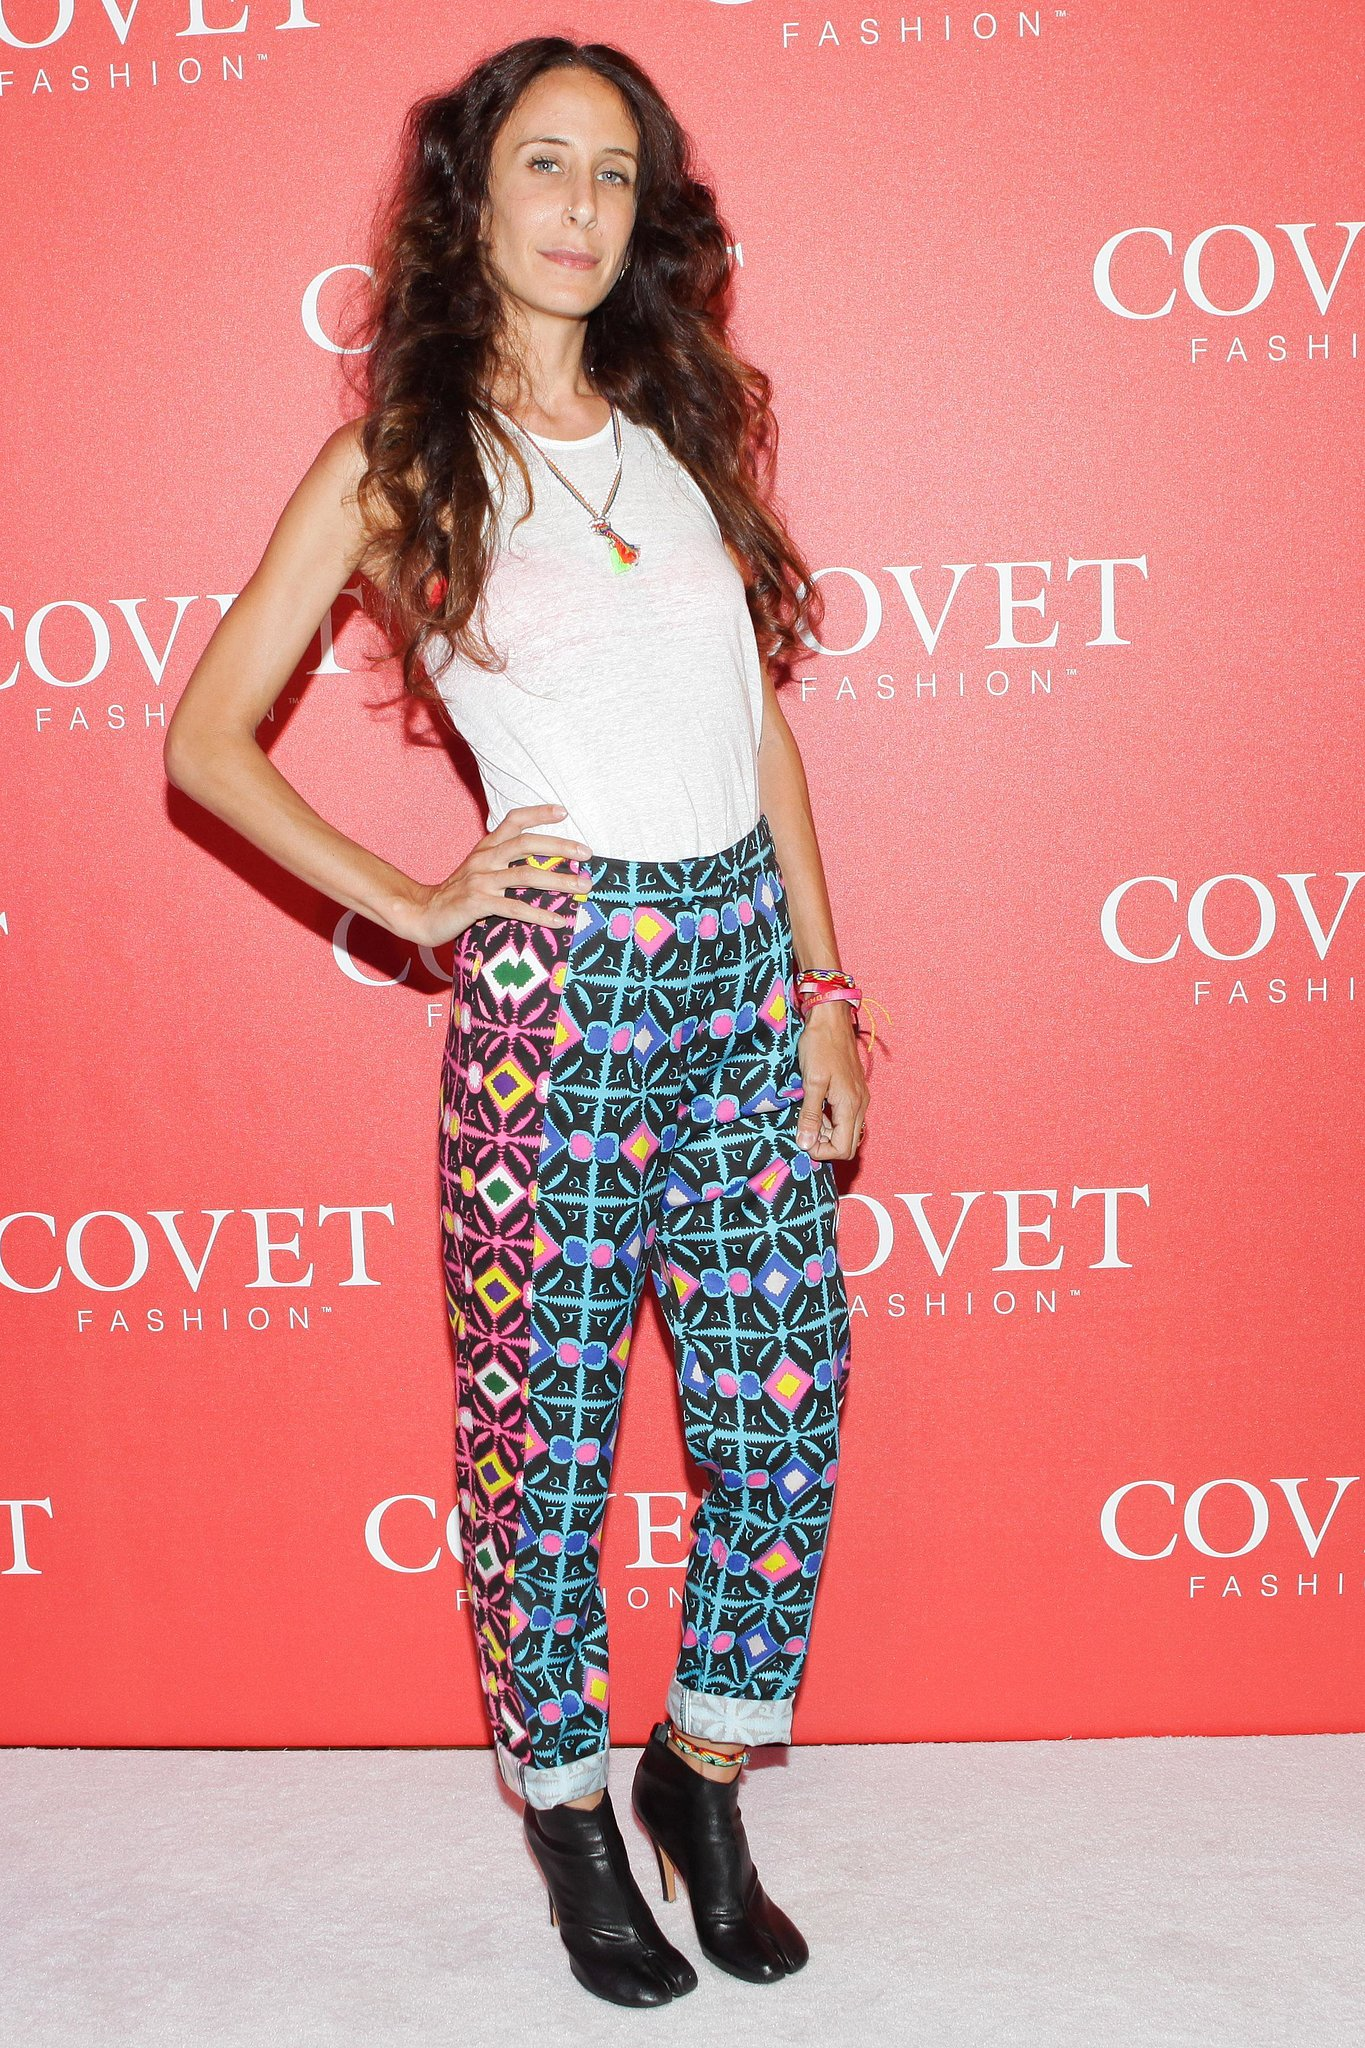 At the Covet launch party, Mara Hoffman modeled her signature prints.